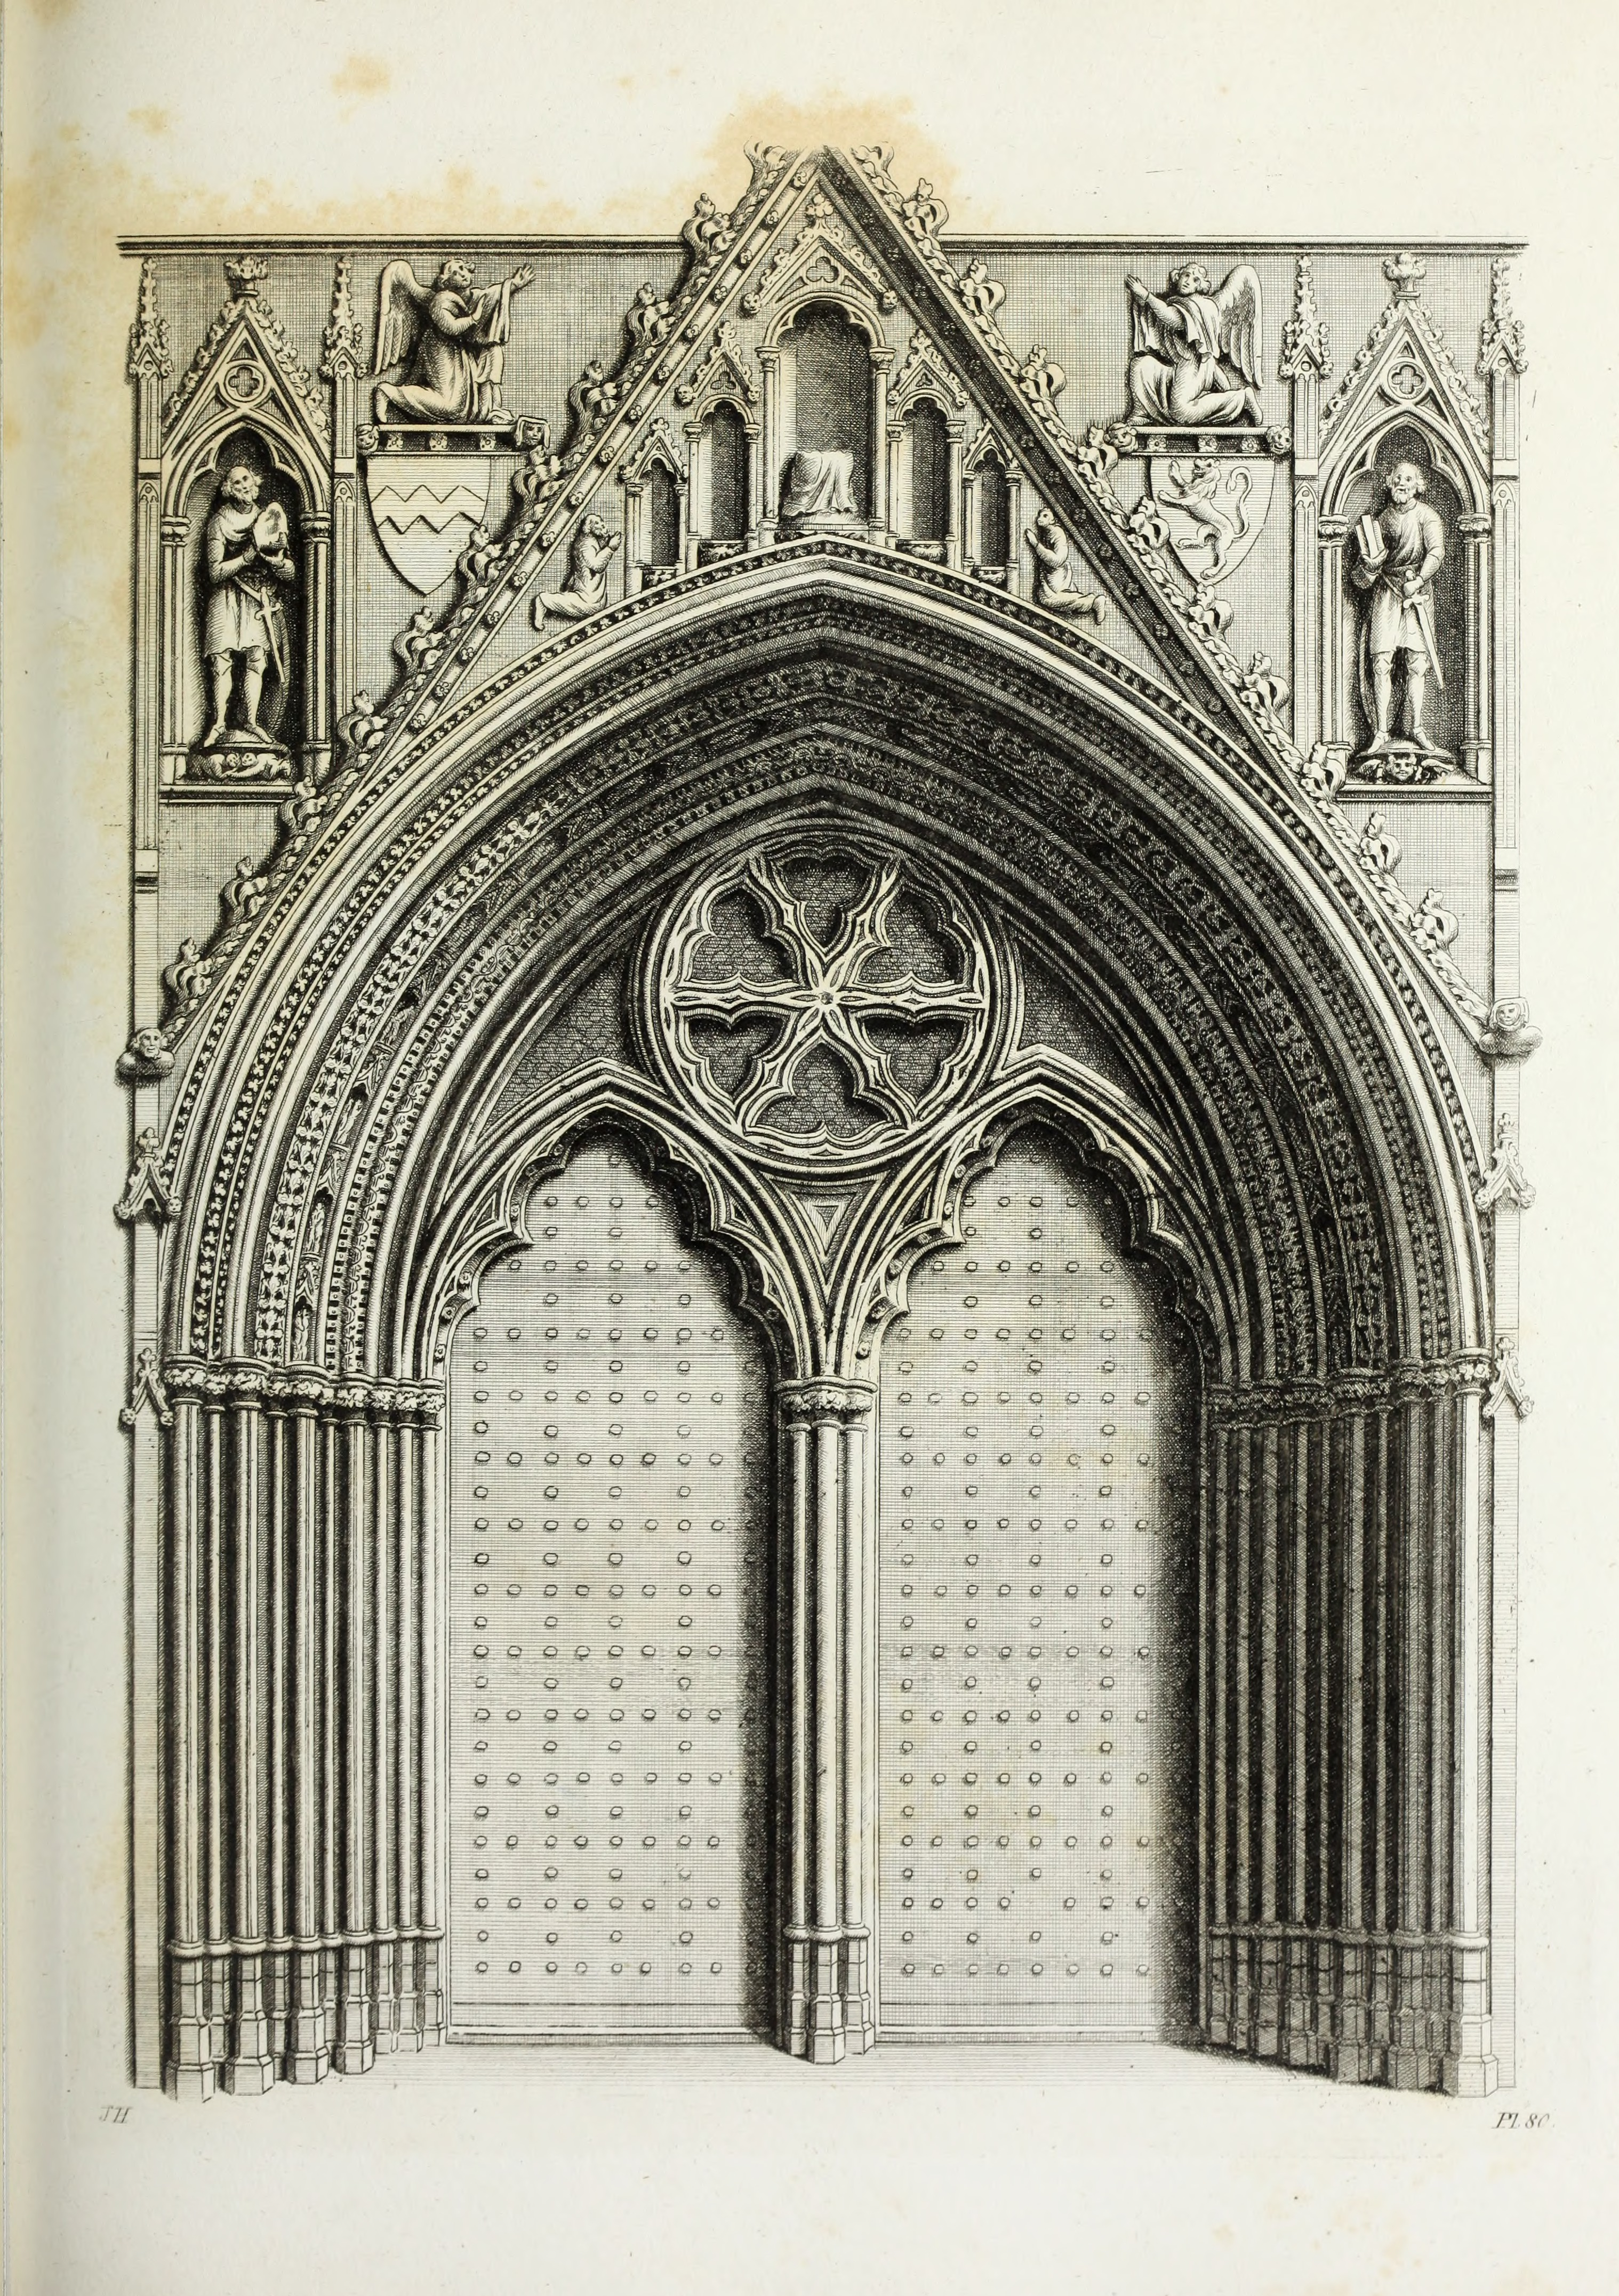 FileGothic Ornaments In The Cathedral Church Of York 1795 14803021373